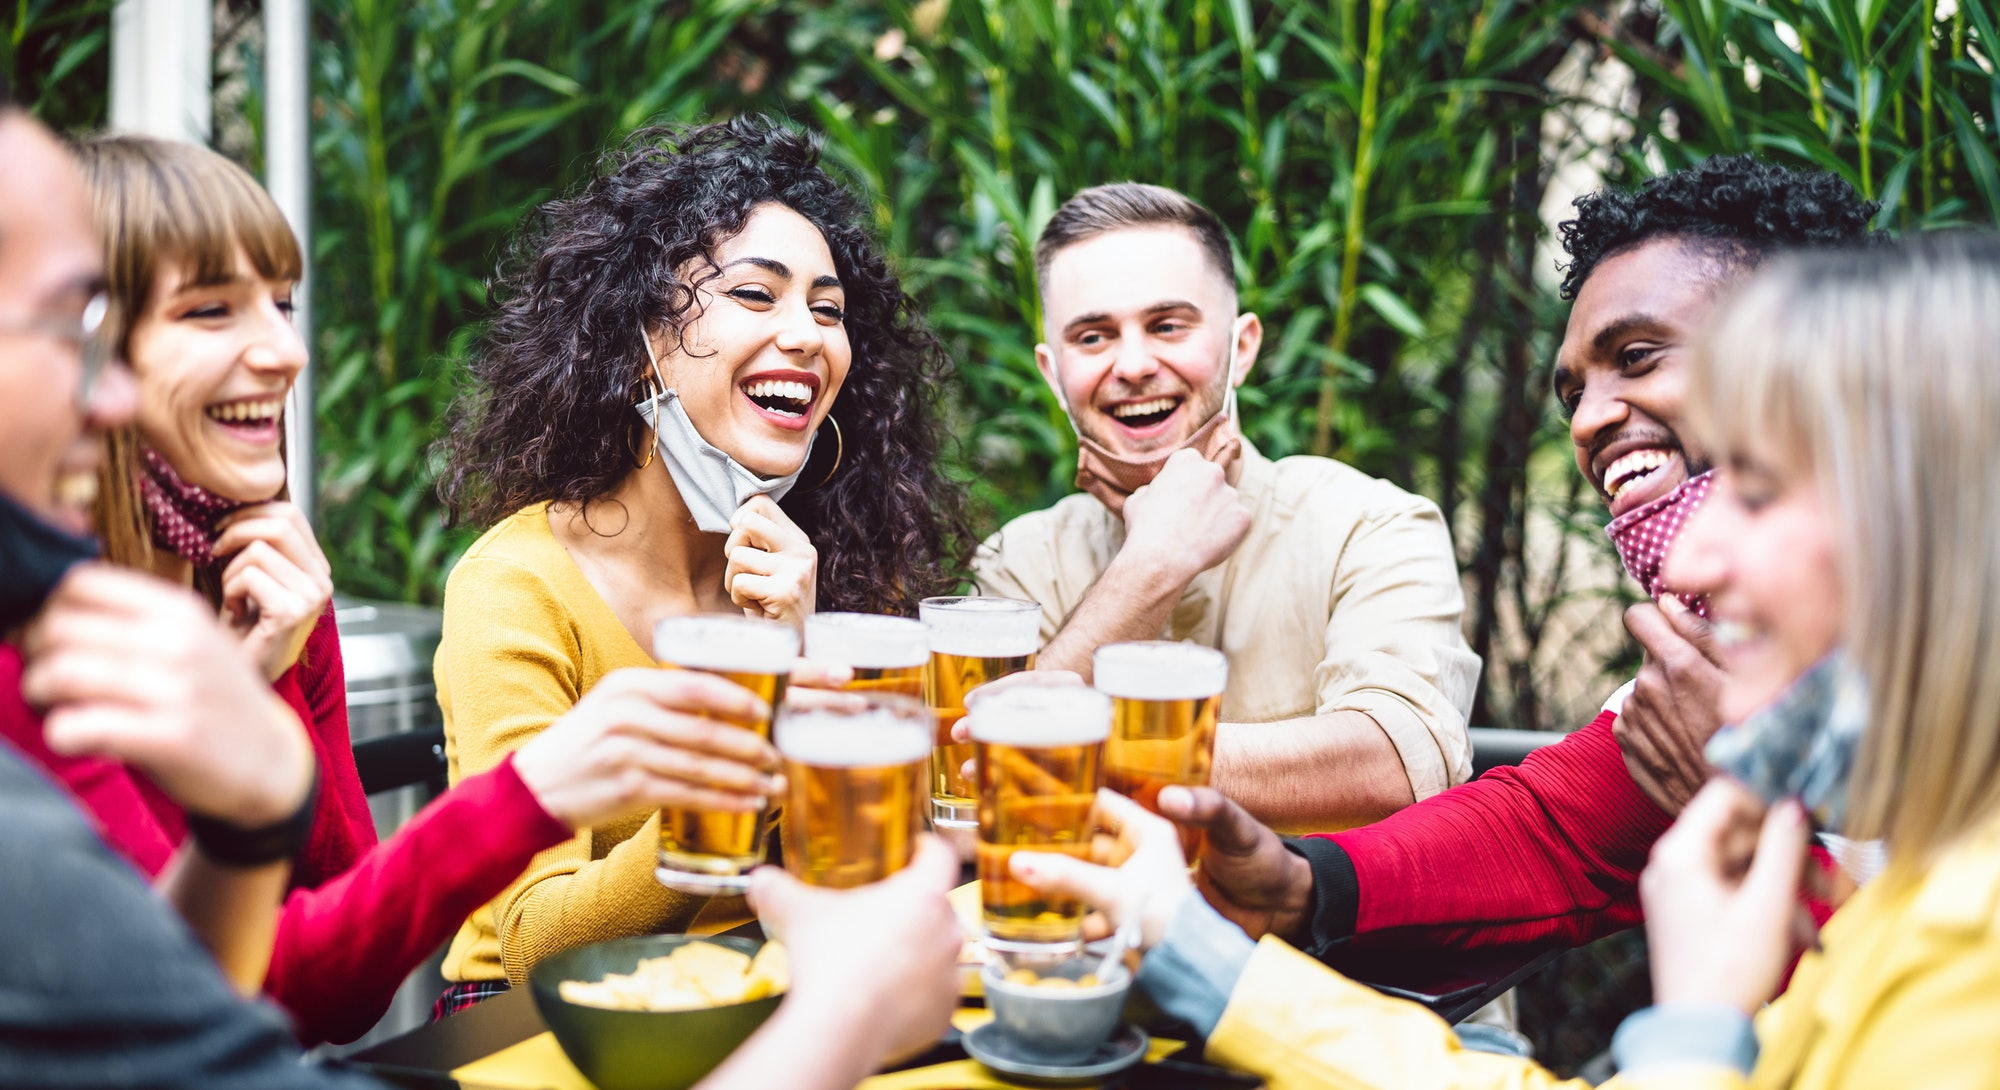 Young people toasting beer wearing open face mask - New normal life style concept with friends havin...